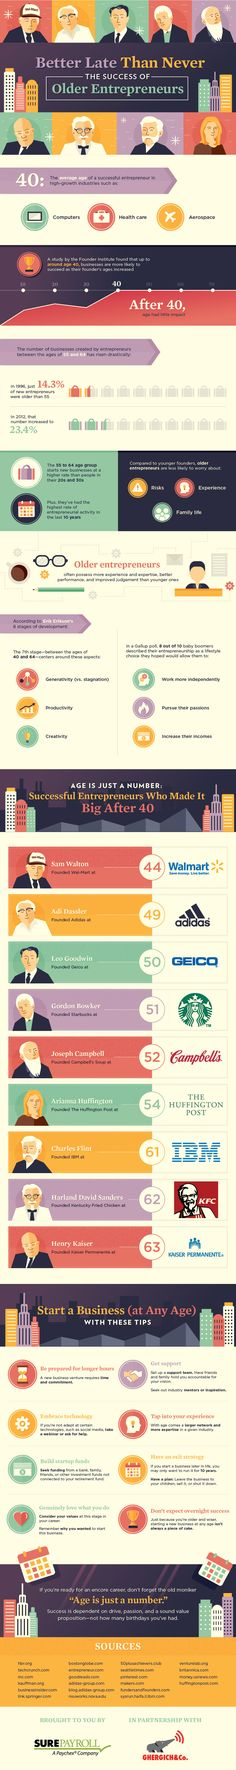 Do you know a lot of successful entrepreneurs made it big after 40? i.e. Gordon Bowker, age 51. Arianna Huffington, age 54. Harland David Sanders, age 62. How about you? Want to take steps towards creating your own business? Start now, it's never too late.